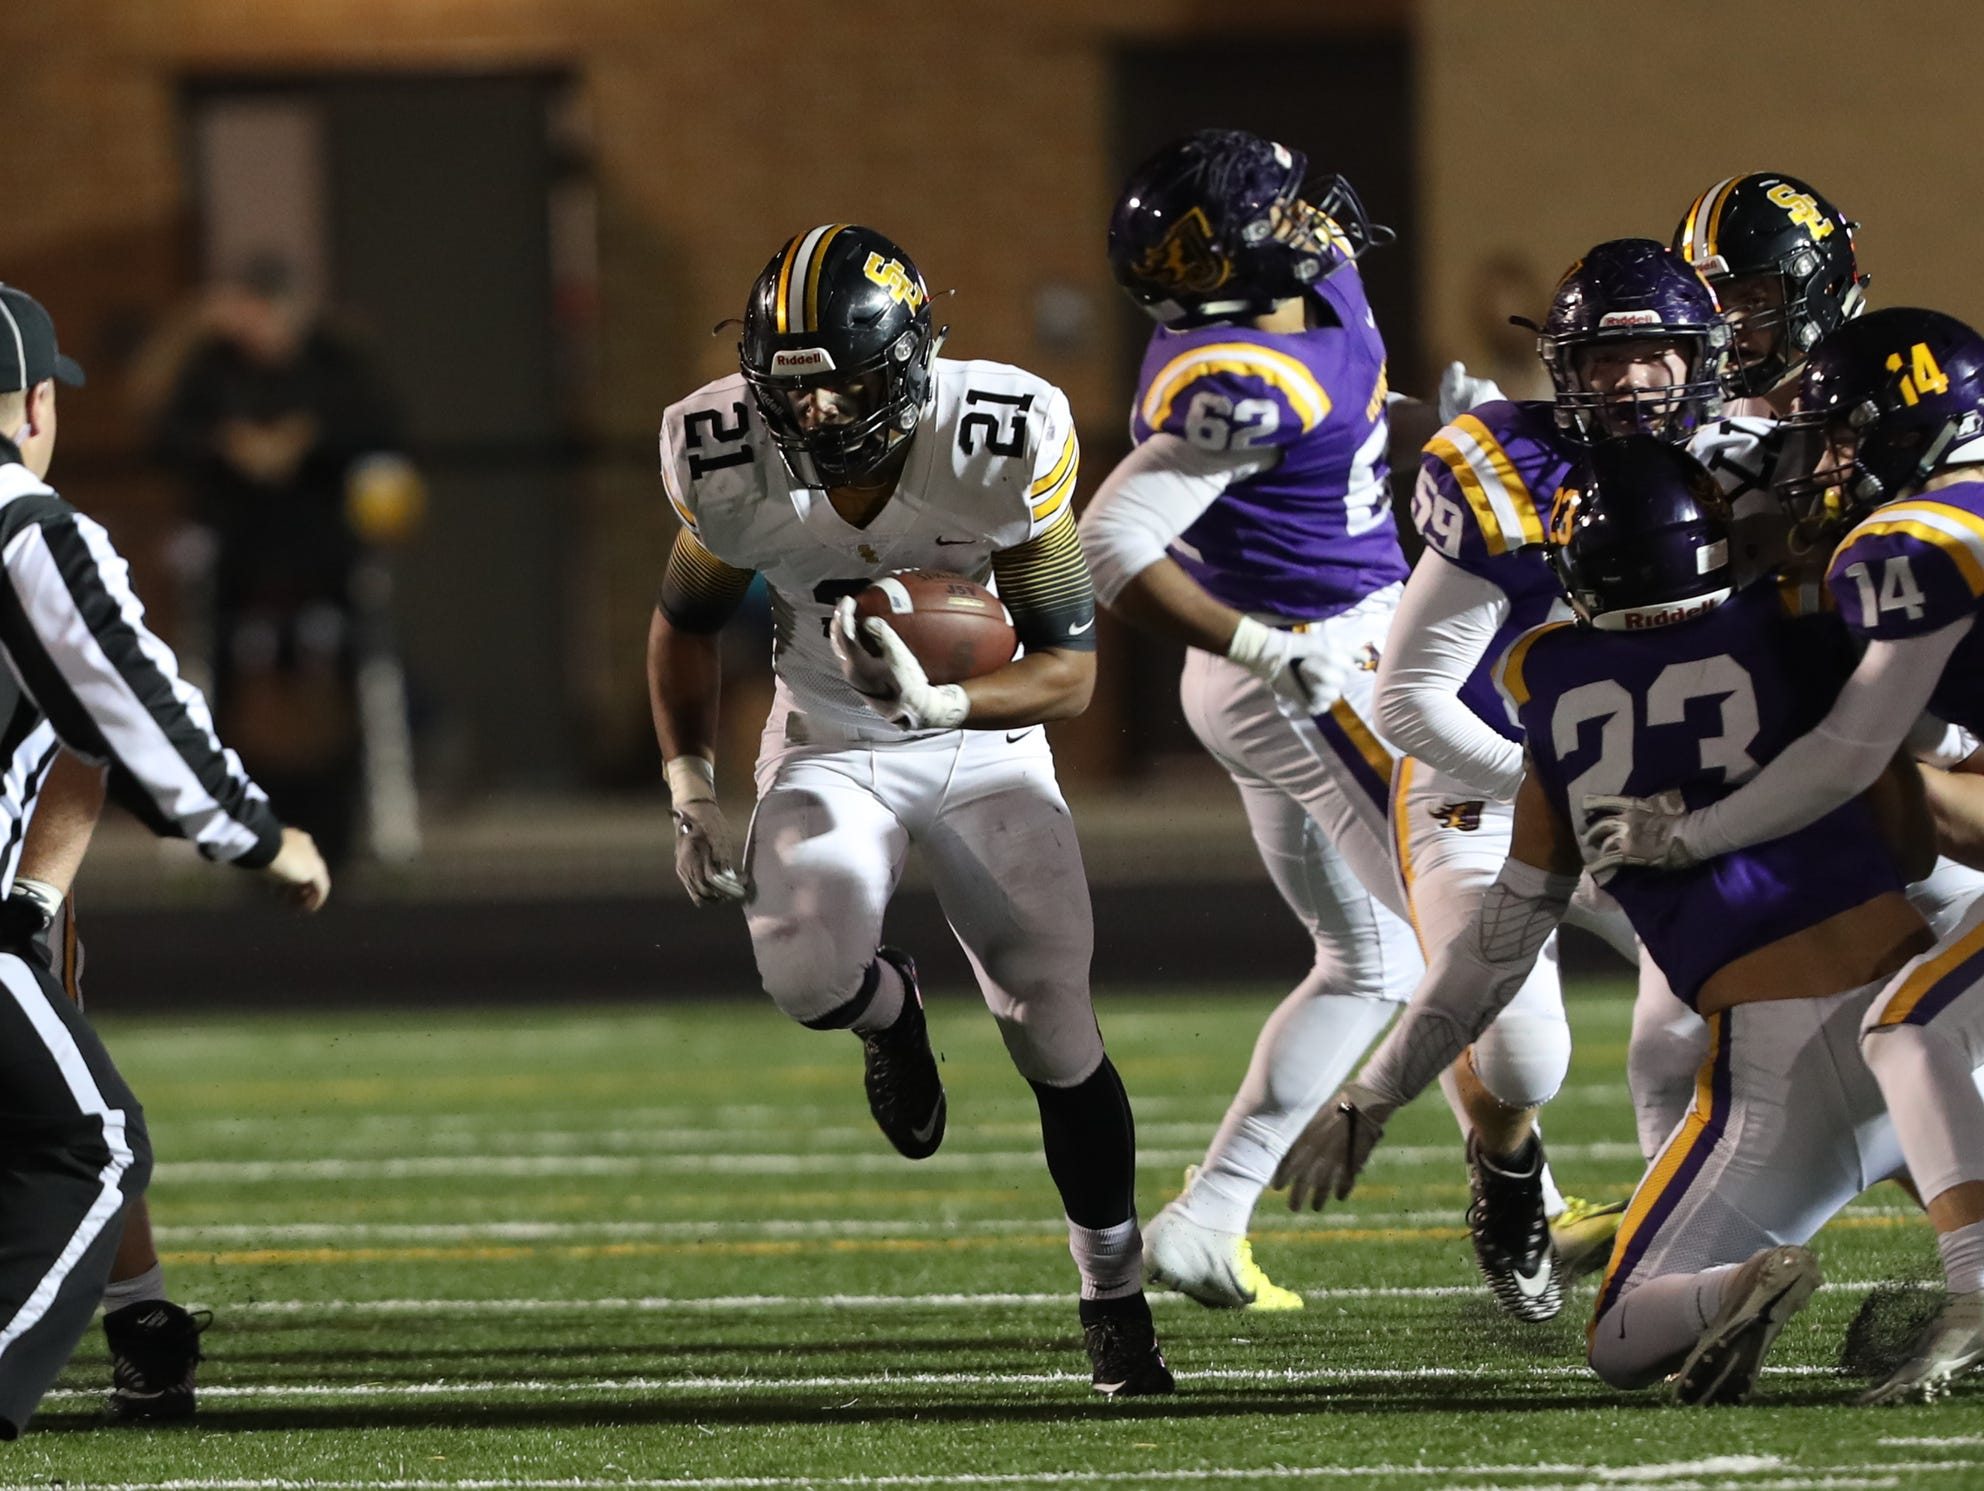 Nov 2, 2018; Johnston, IA, USA; Southeast Polk Rams Gavin Williams (21) runs for a first down against the Southeast Polk Rams at Johnston Stadium. The Rams beat the Dragons 21-7.